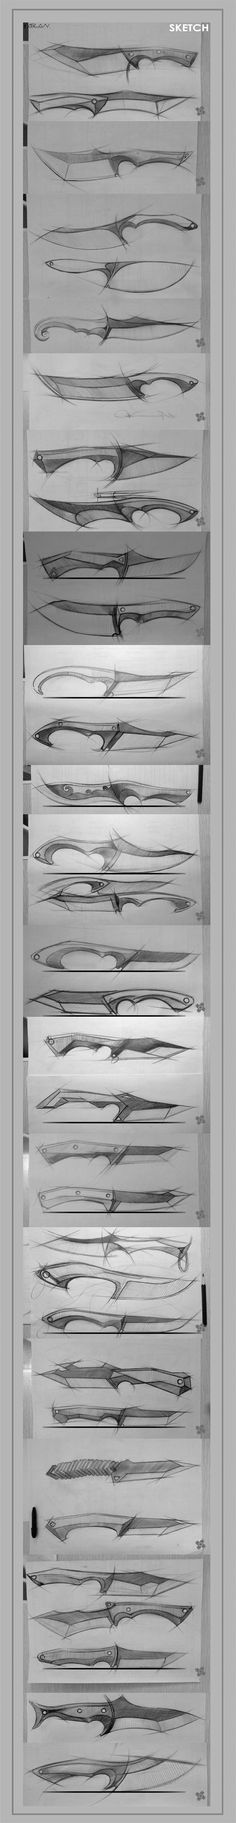 Interesting sketches on various knife possibilities. Inspiration for my own sketches. Cool Knives, Knives And Tools, Knives And Swords, Kydex, Diy Knife, Concept Weapons, Fantasy Weapons, Custom Knives, Knife Making